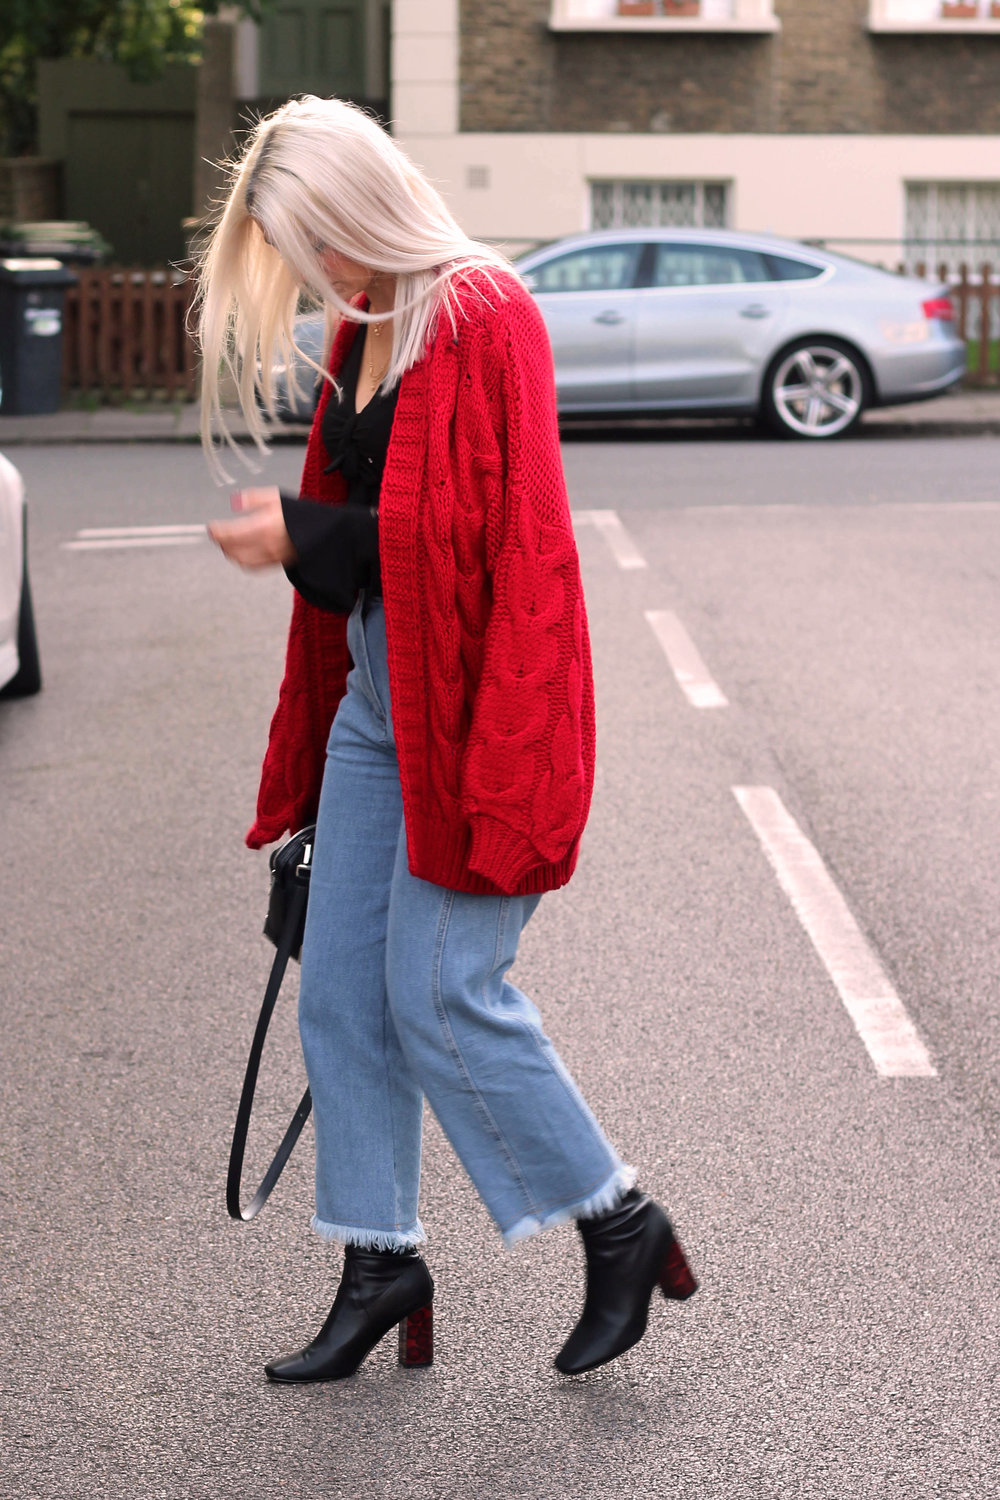 topshop jeans, next red cardigan, tie front ruffle top, ego boots, northern magpie, joey taylor 6